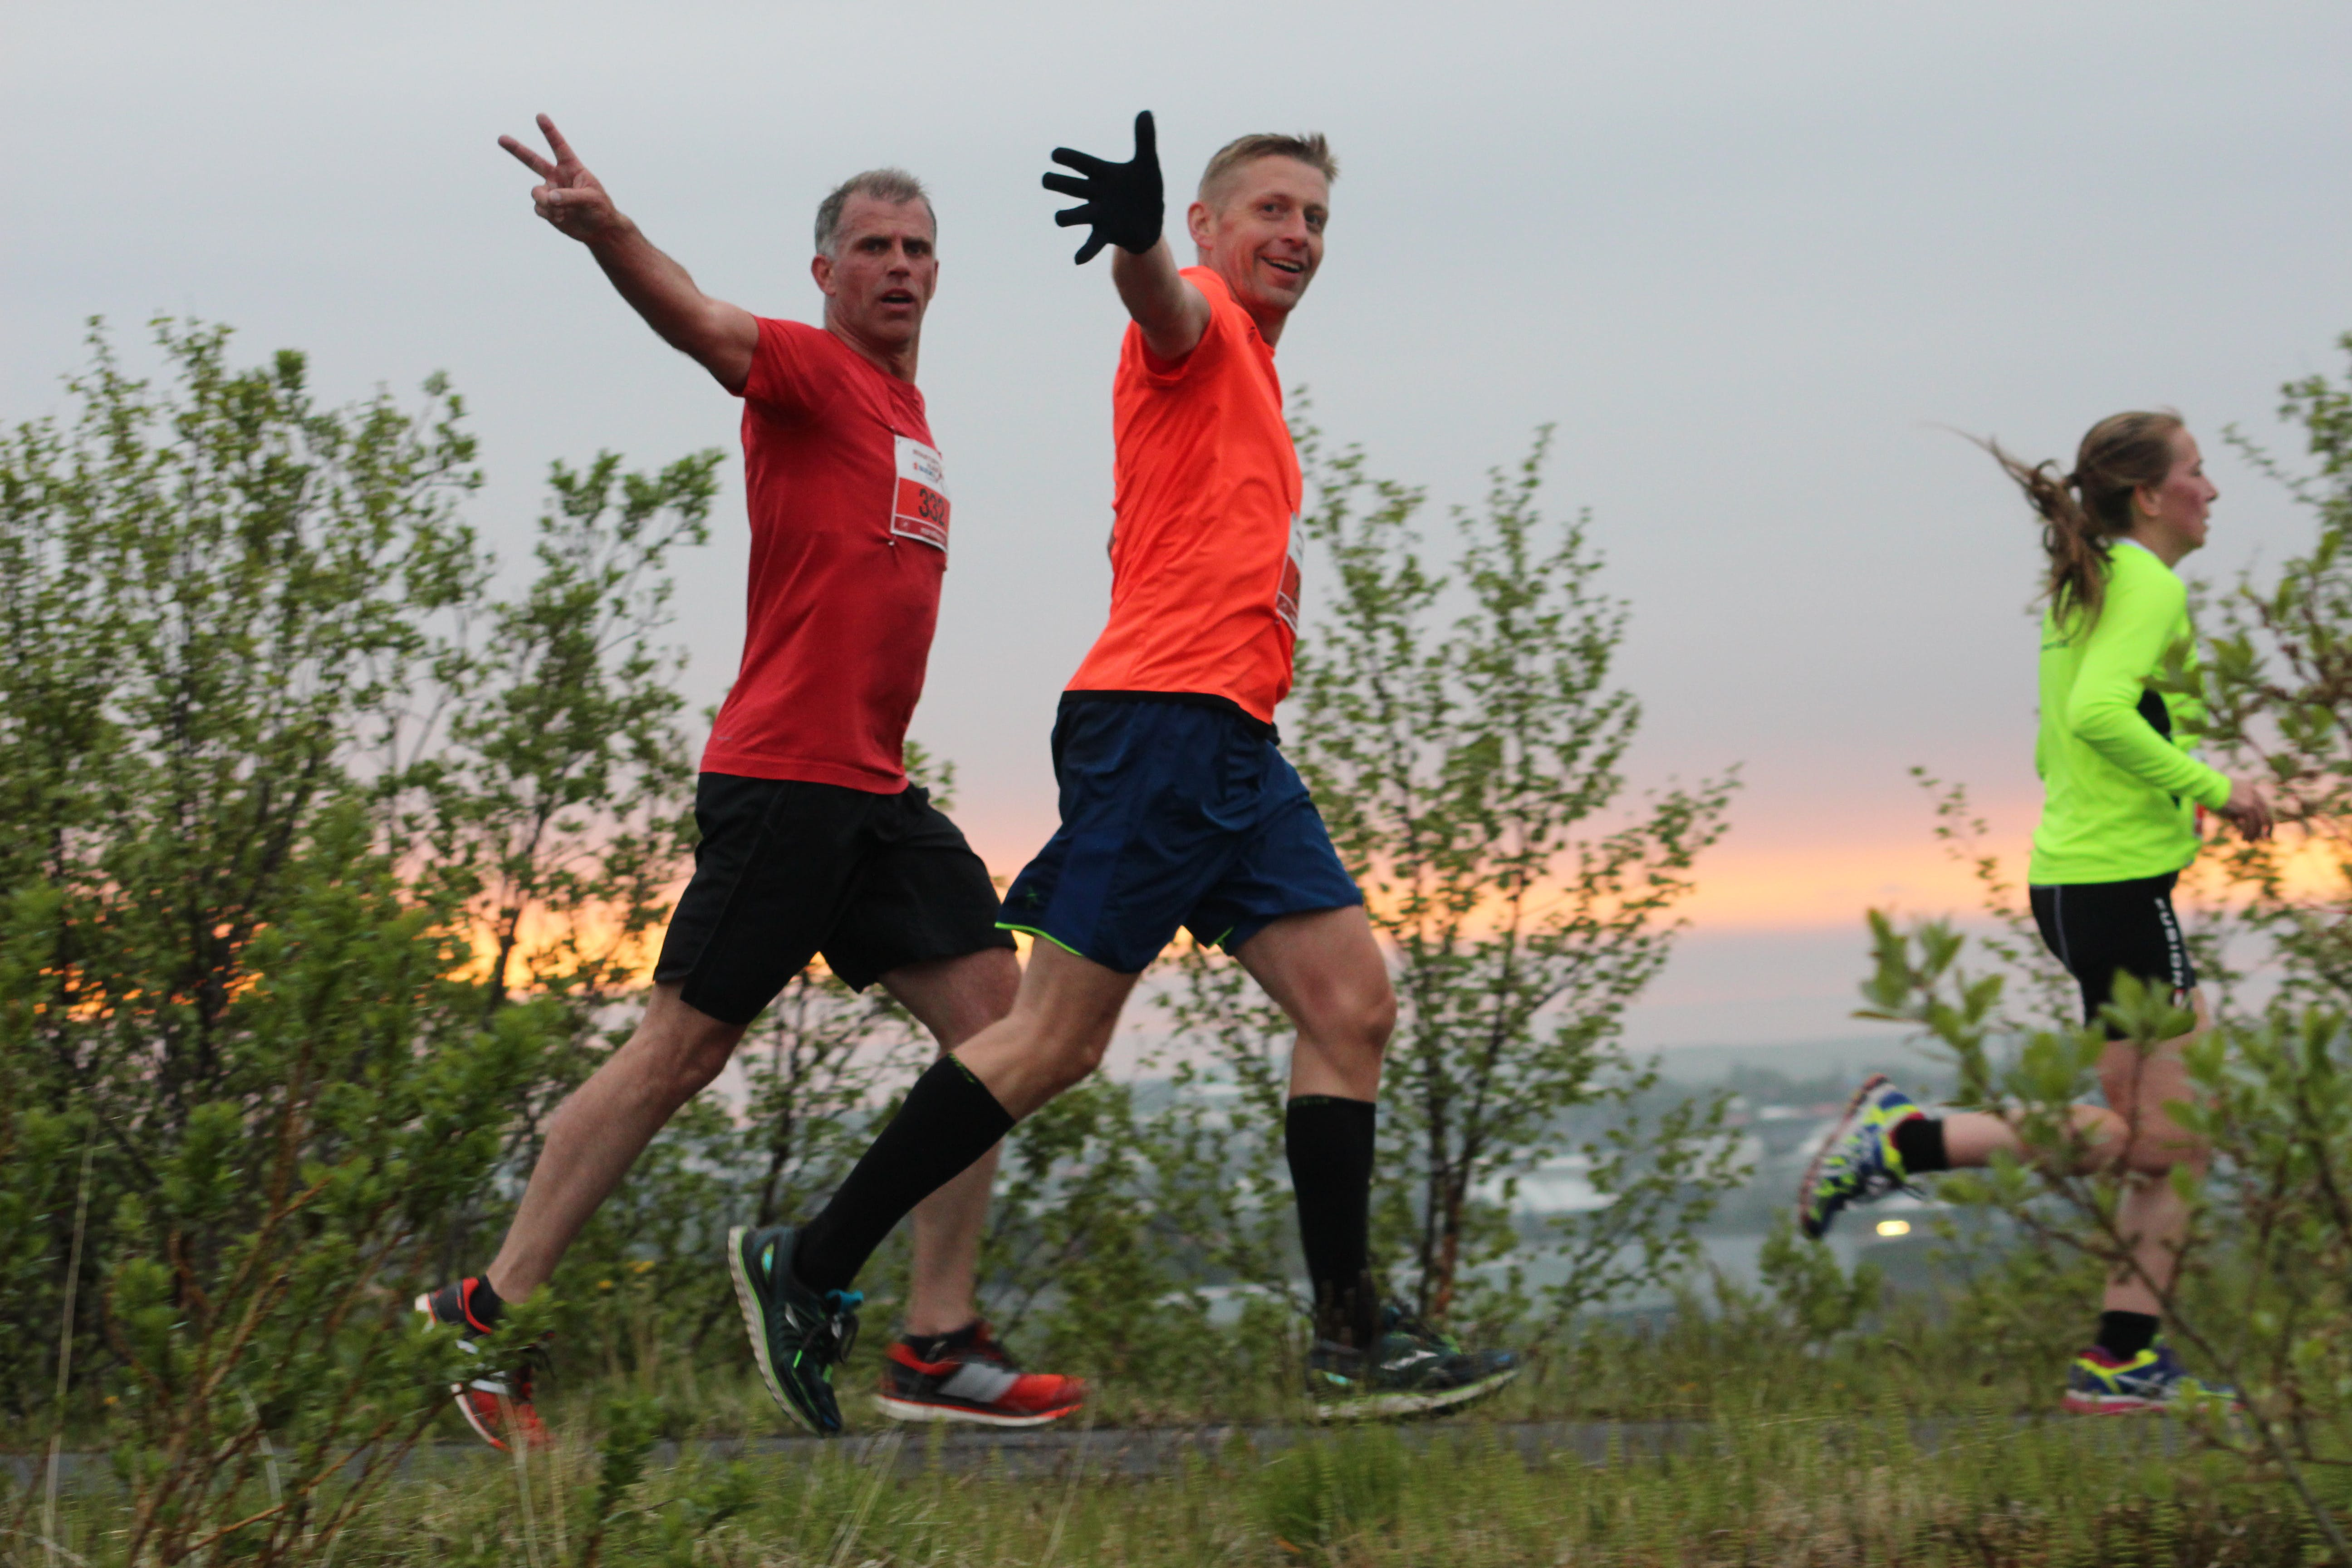 Happy participants running in the midnight sun